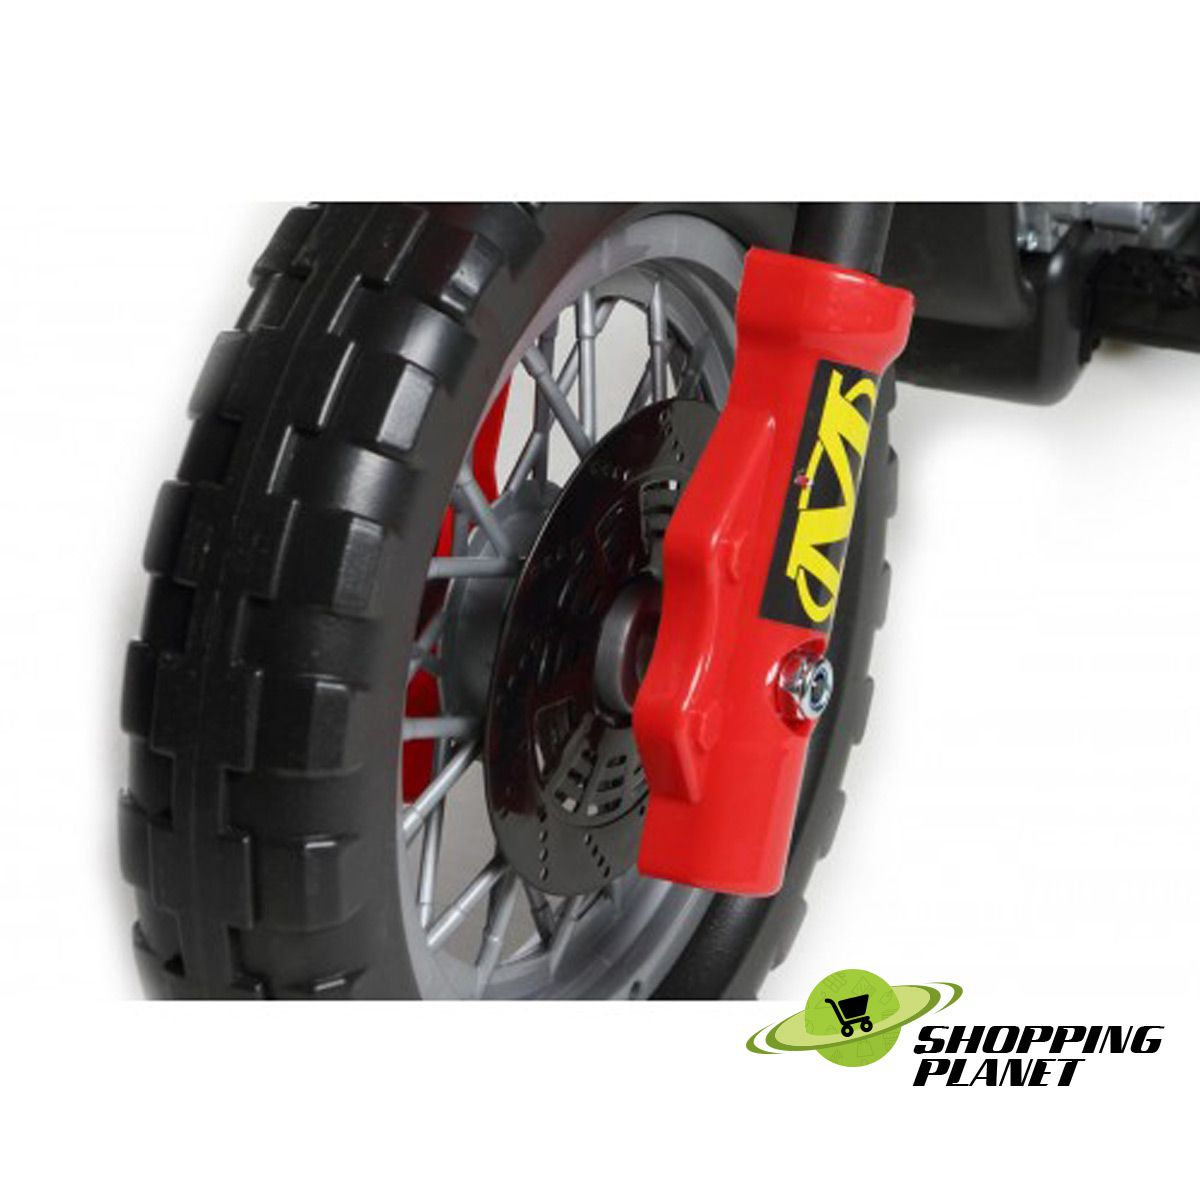 Chargeable Battery Dirt Bike For Kids